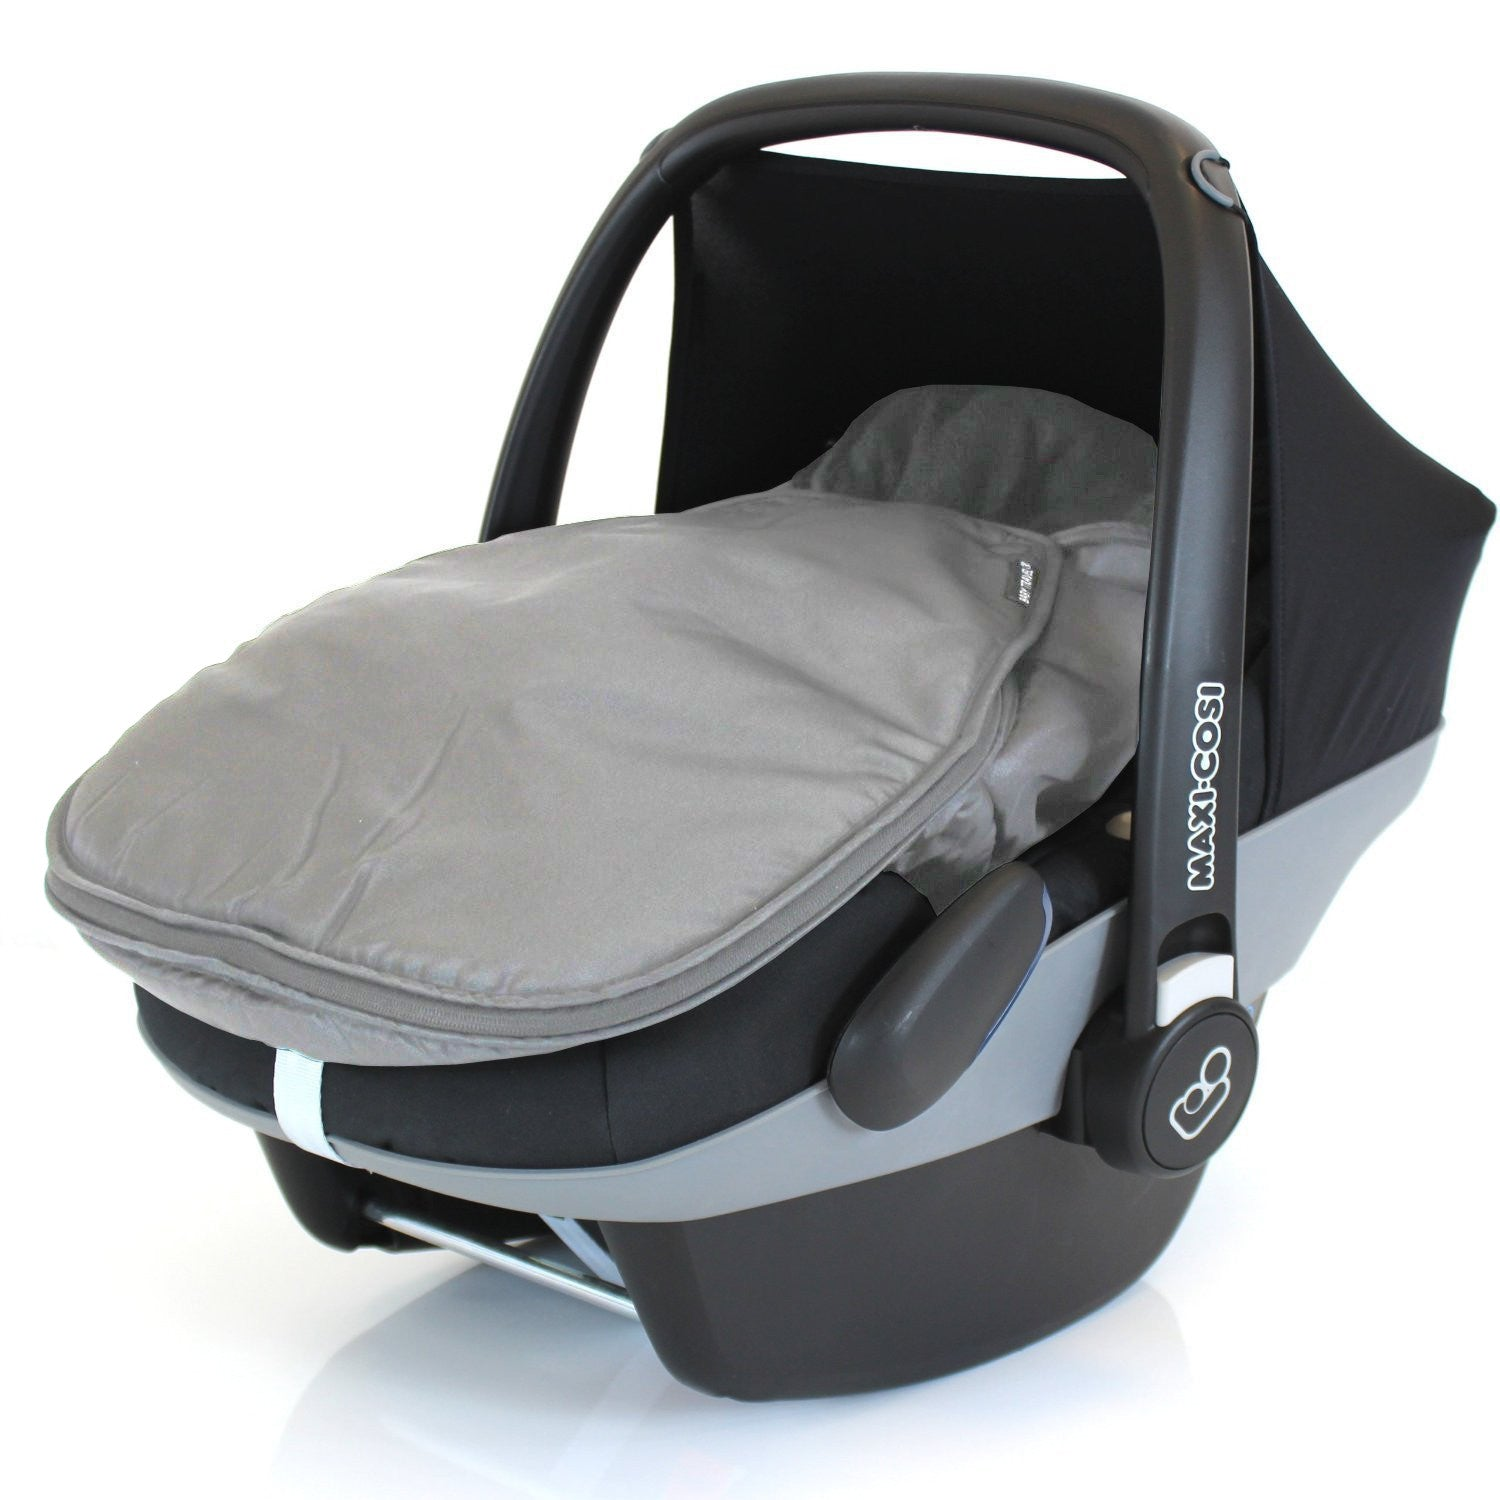 New Carseat Footmuff Fits All Car Seats Cabrio Graco Pebble Chicco Cosatto